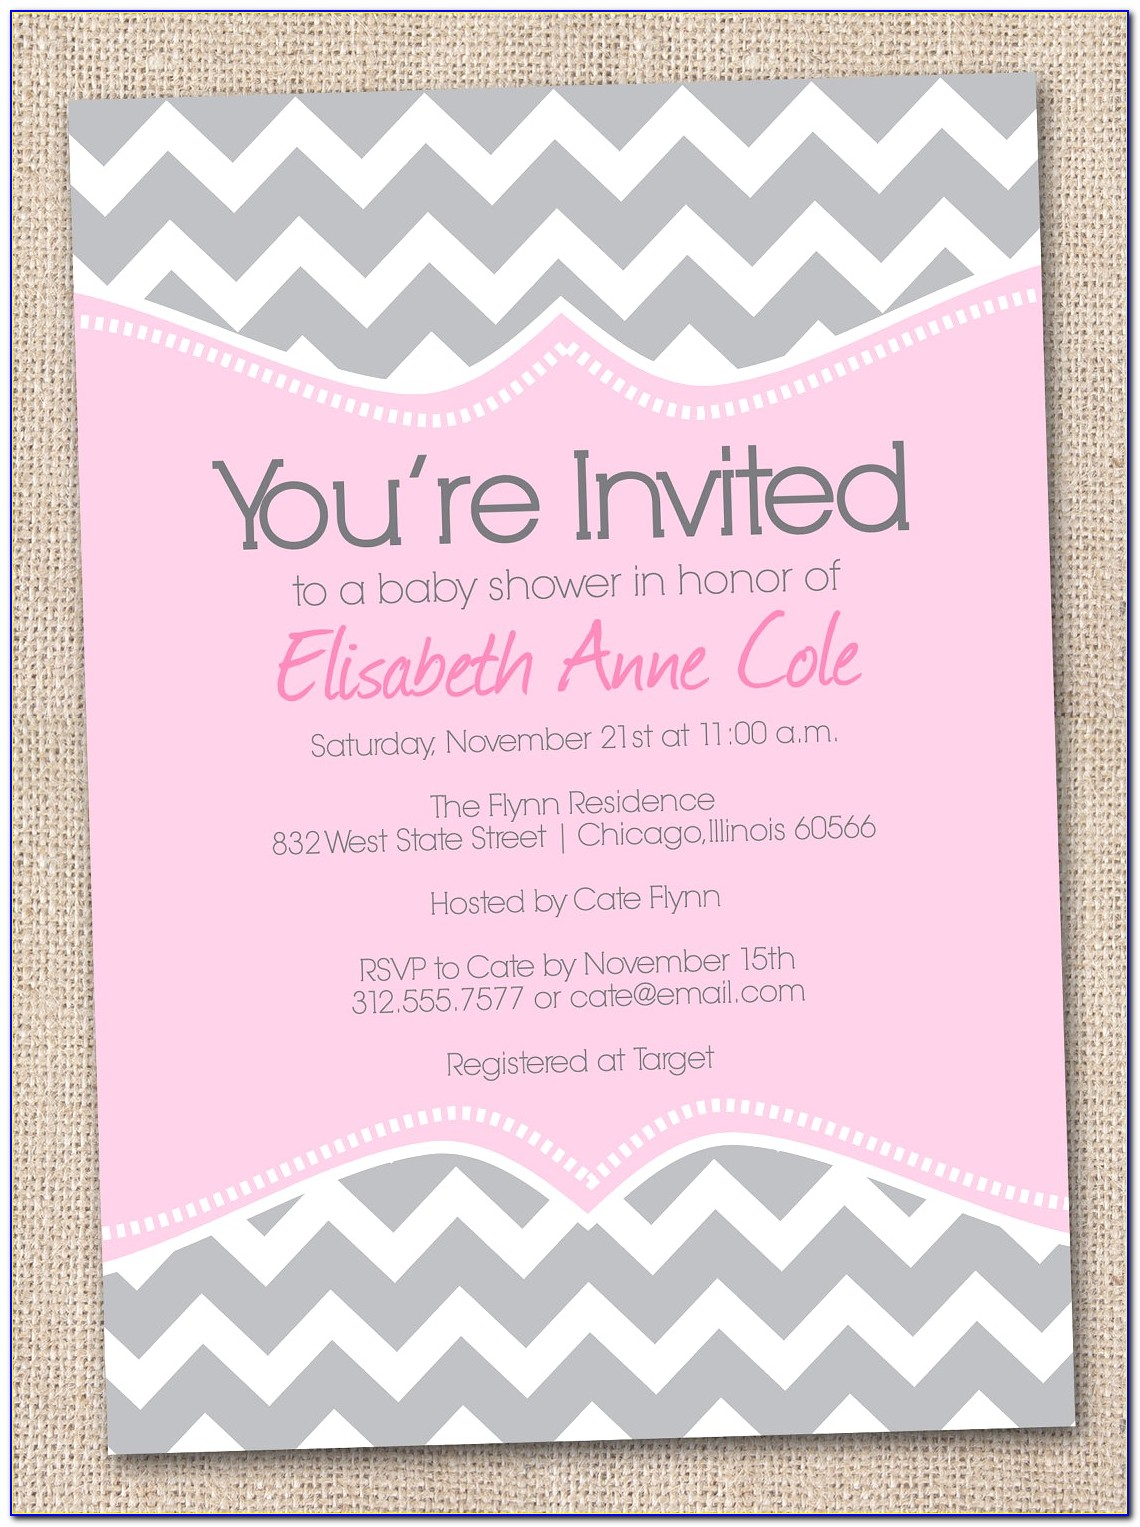 Create An Evite Invitation